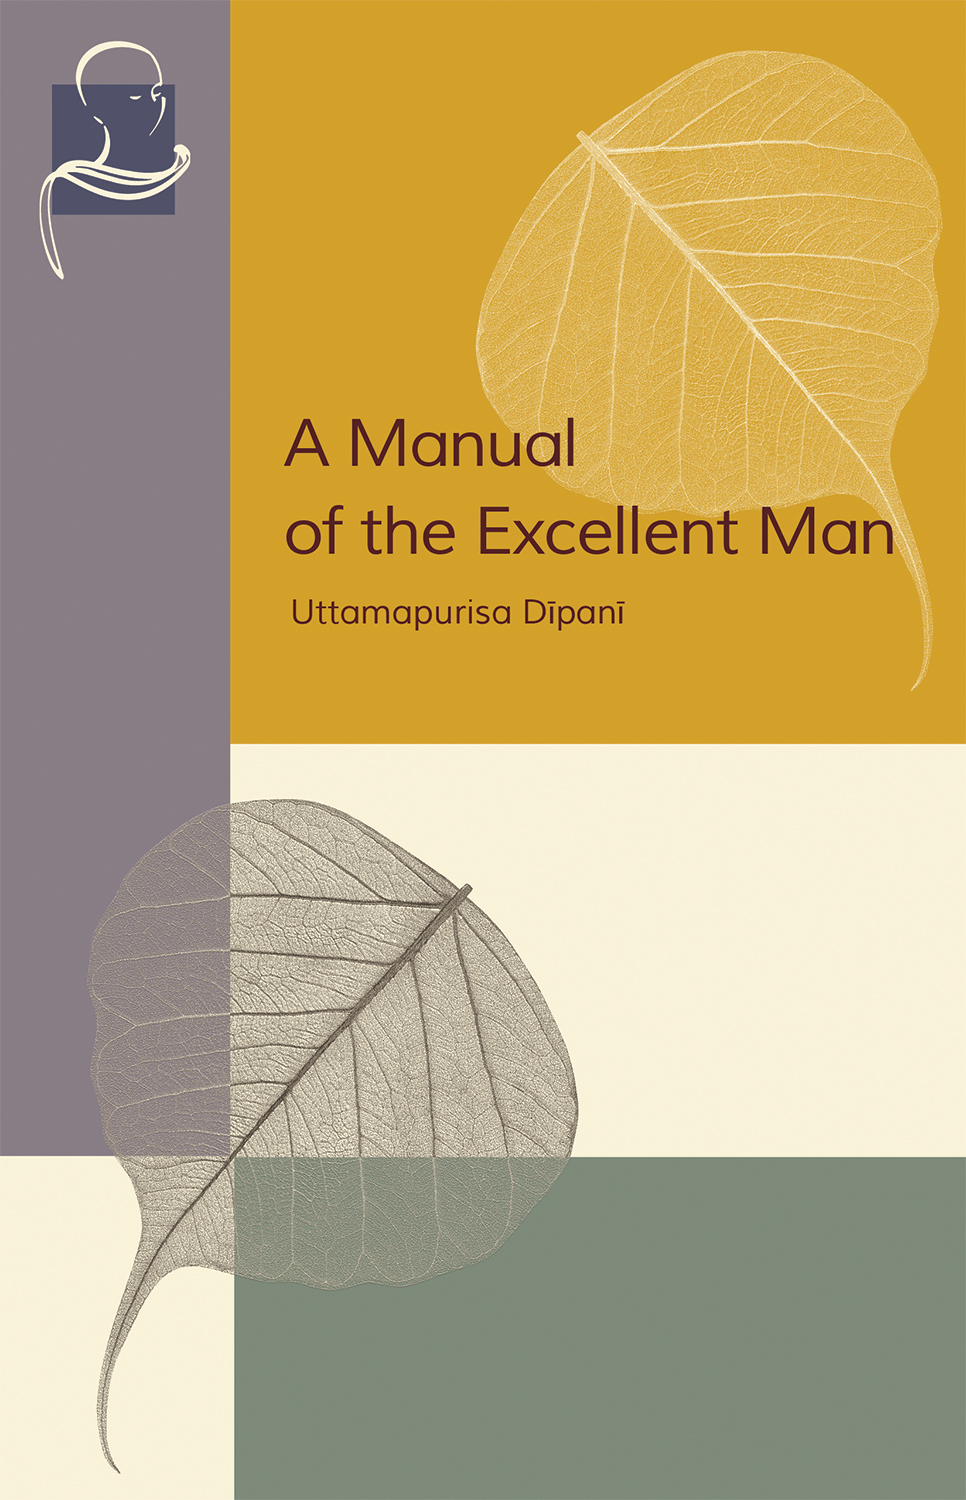 Manual of the Excellent Man